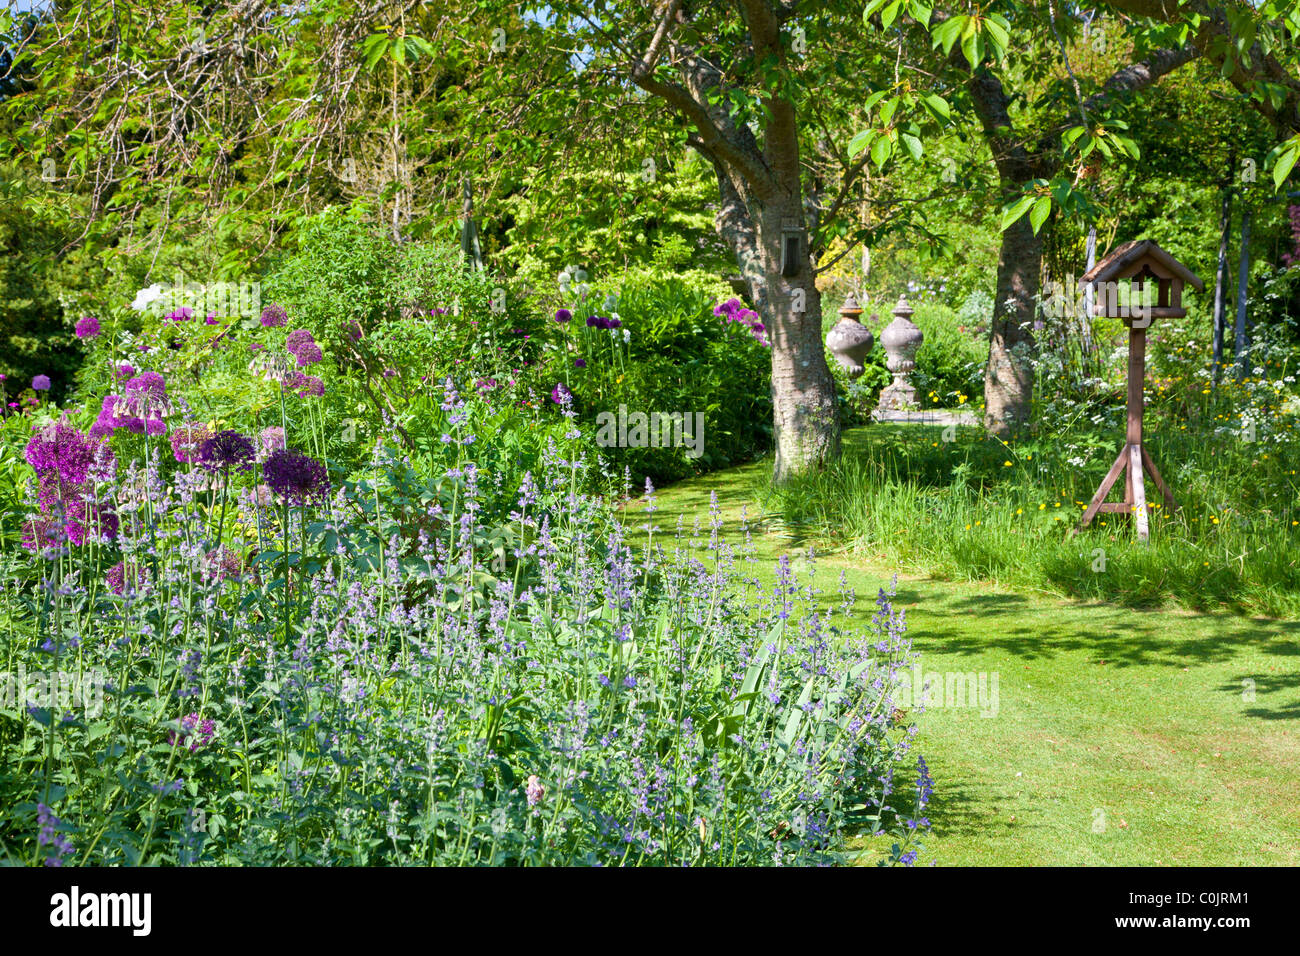 A Corner Of An English Country Garden With A Grassy Path